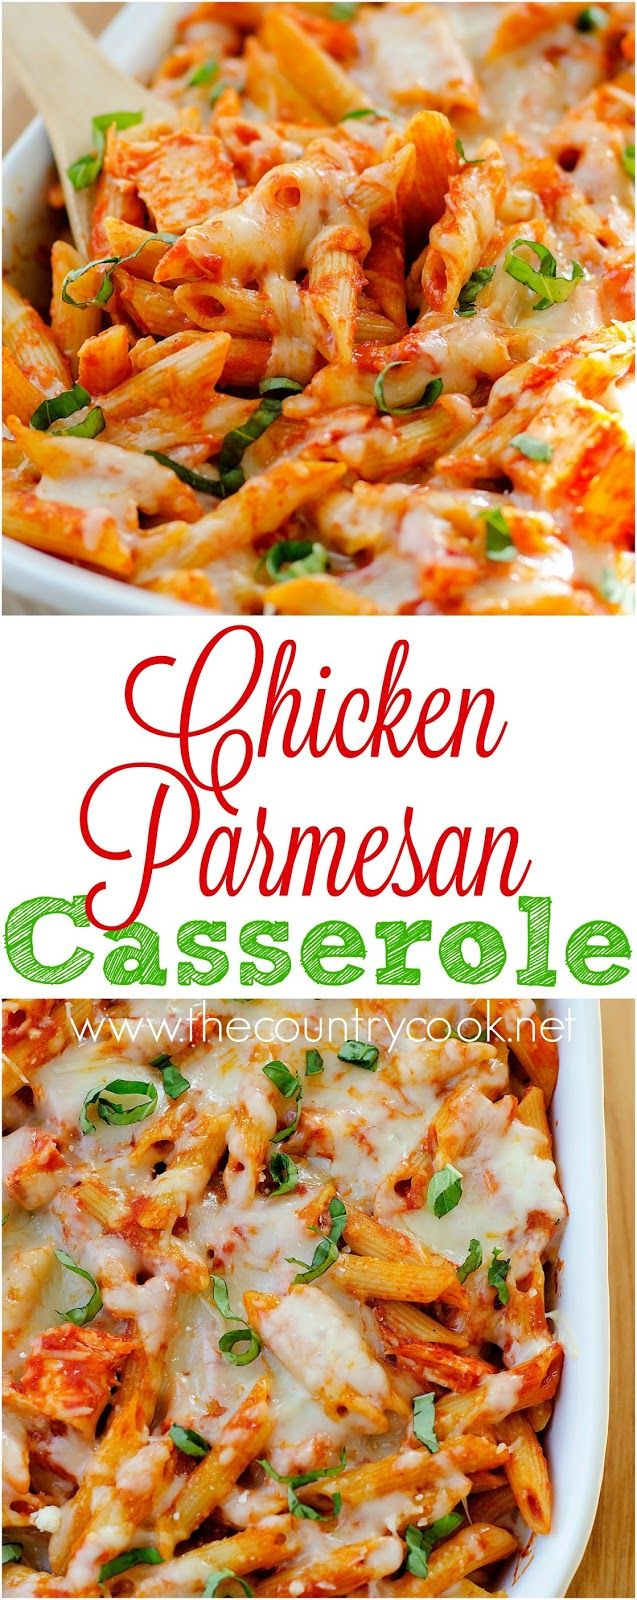 The Country Cook  Chicken Parmesan Casserole